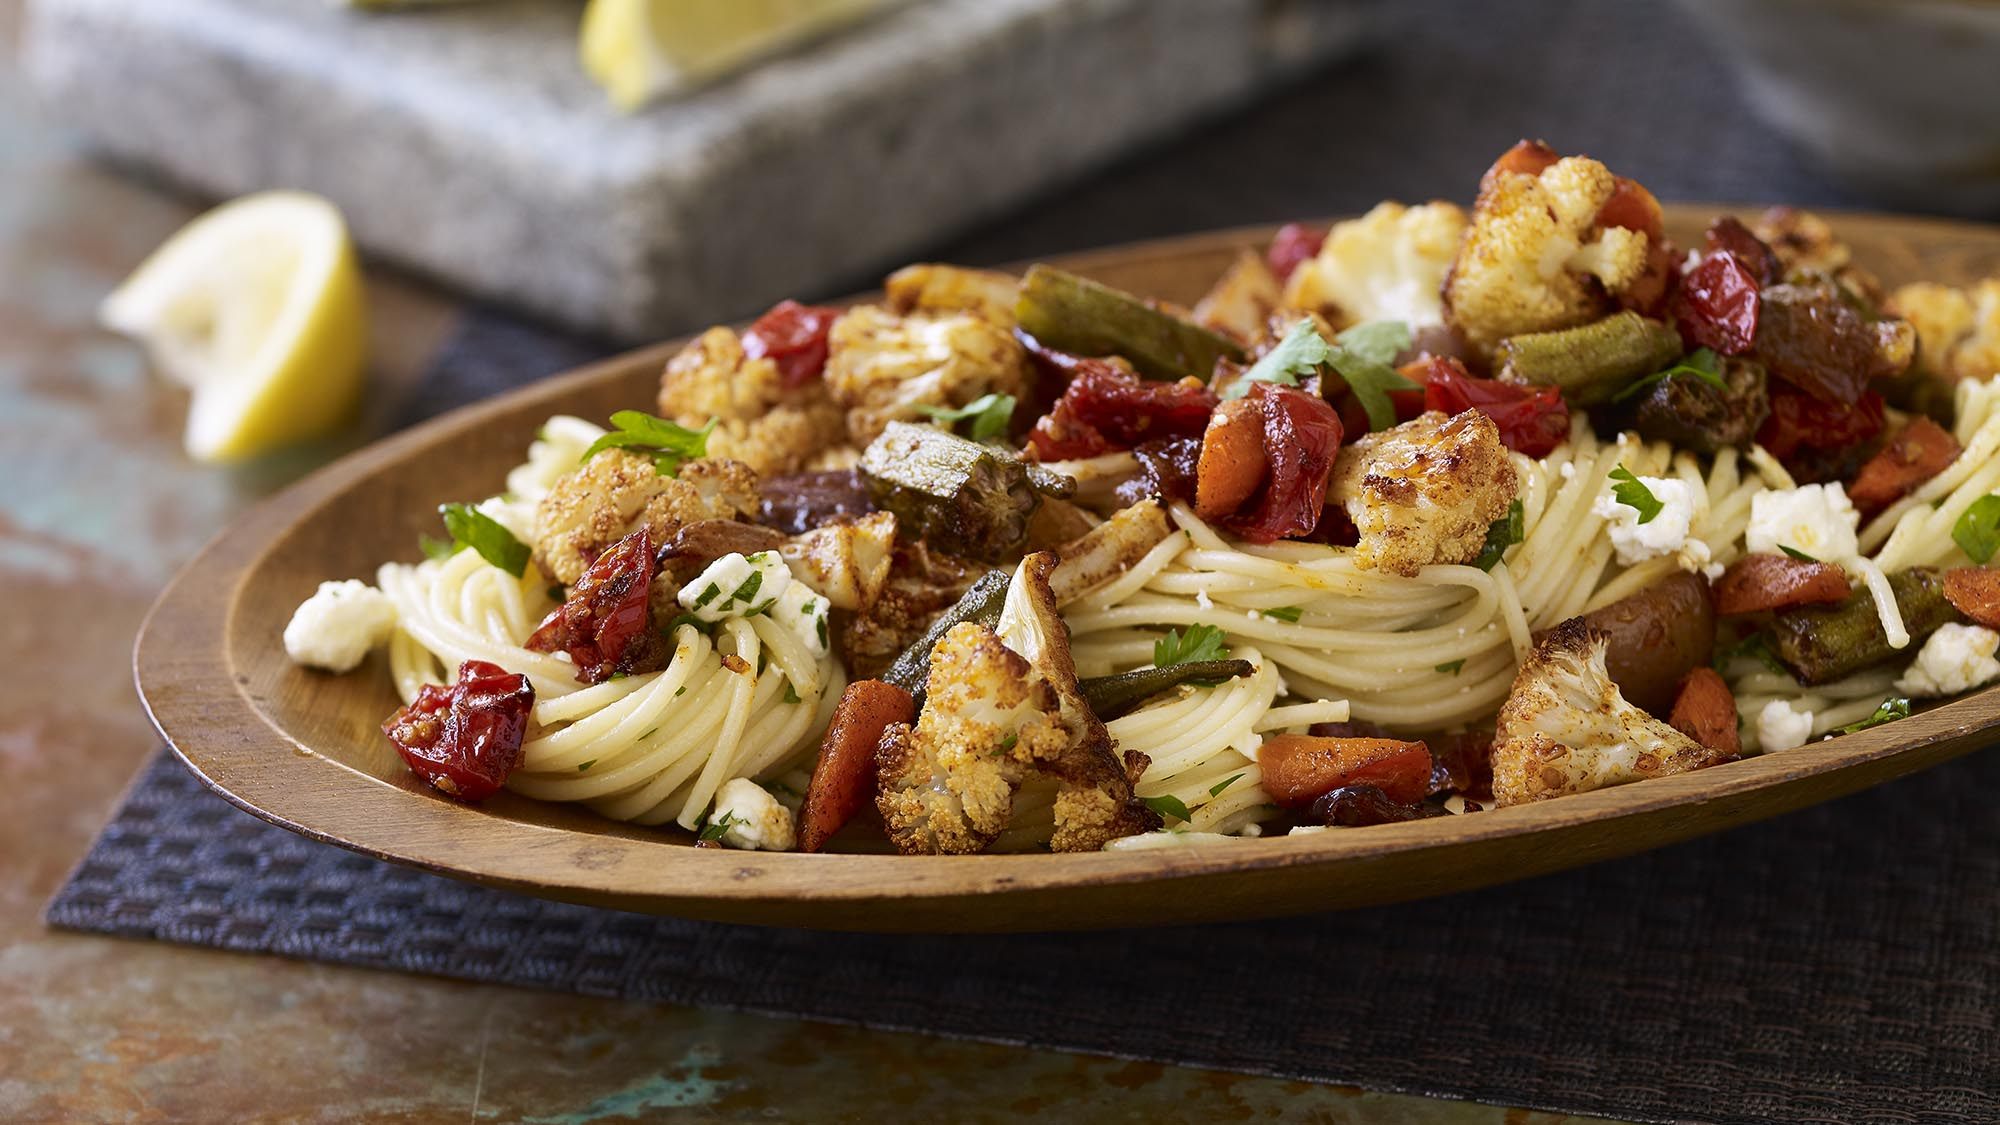 berbere_spiced_roasted_vegetables_and_pasta_2000x1125.jpg